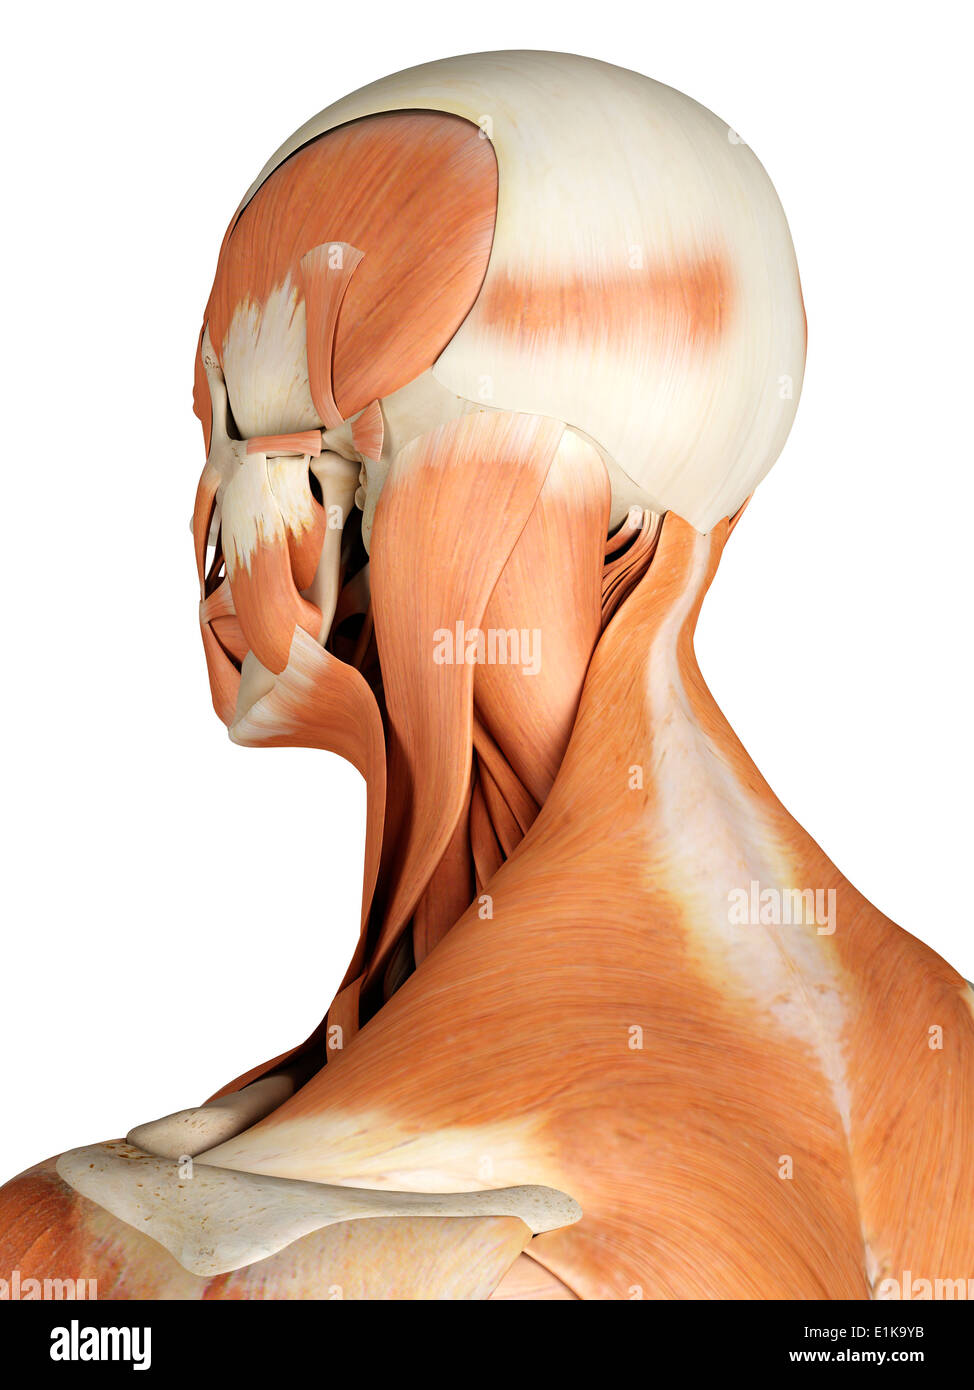 Human Muscular Head Neck Computer Stock Photos Human Muscular Head